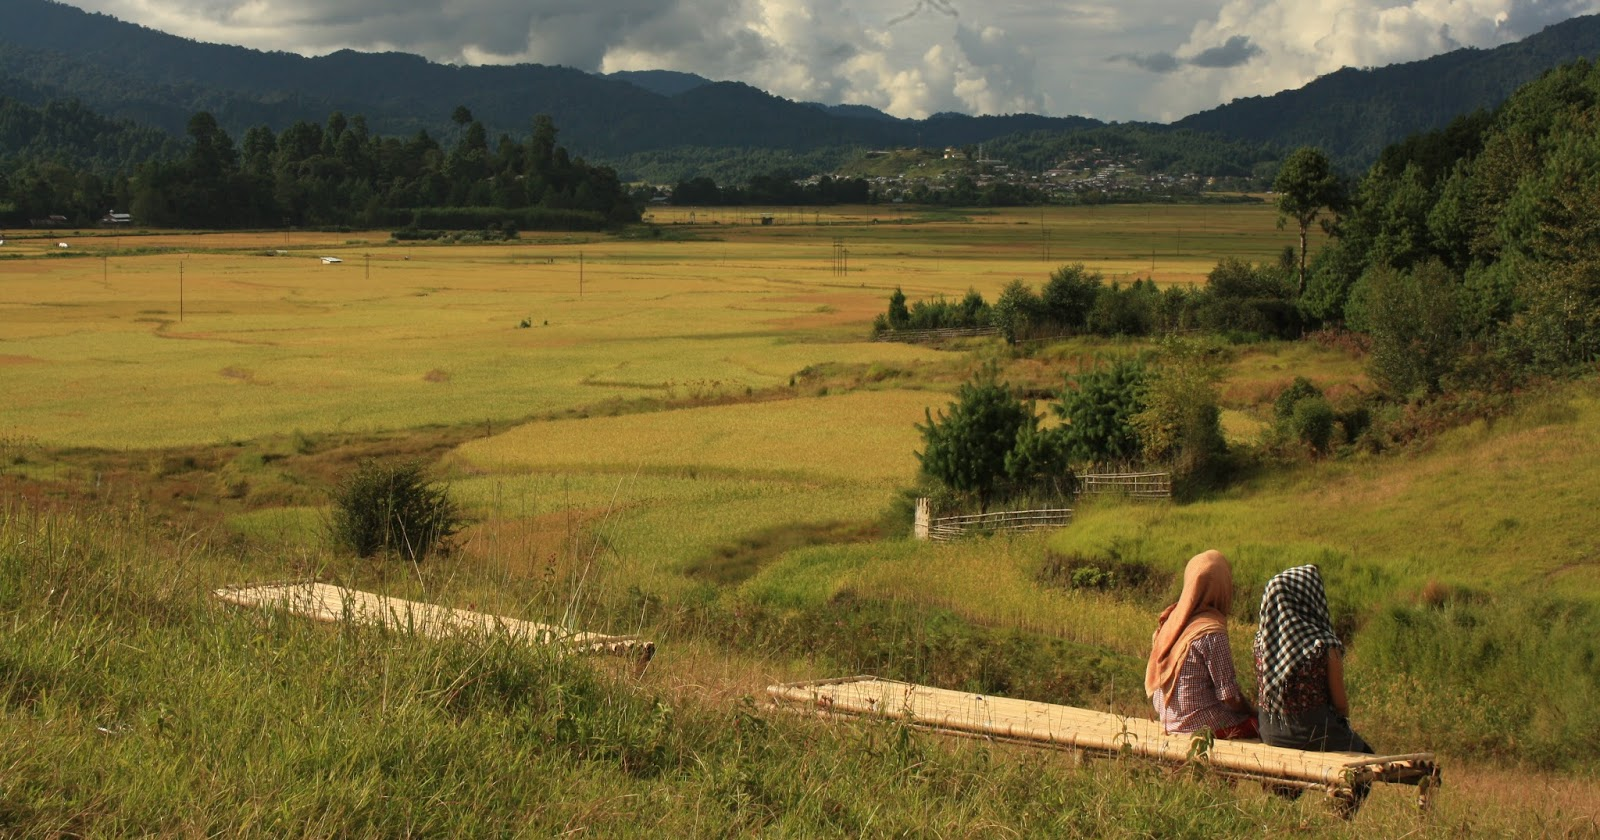 Ziro Valley - Arunachal Pradesh